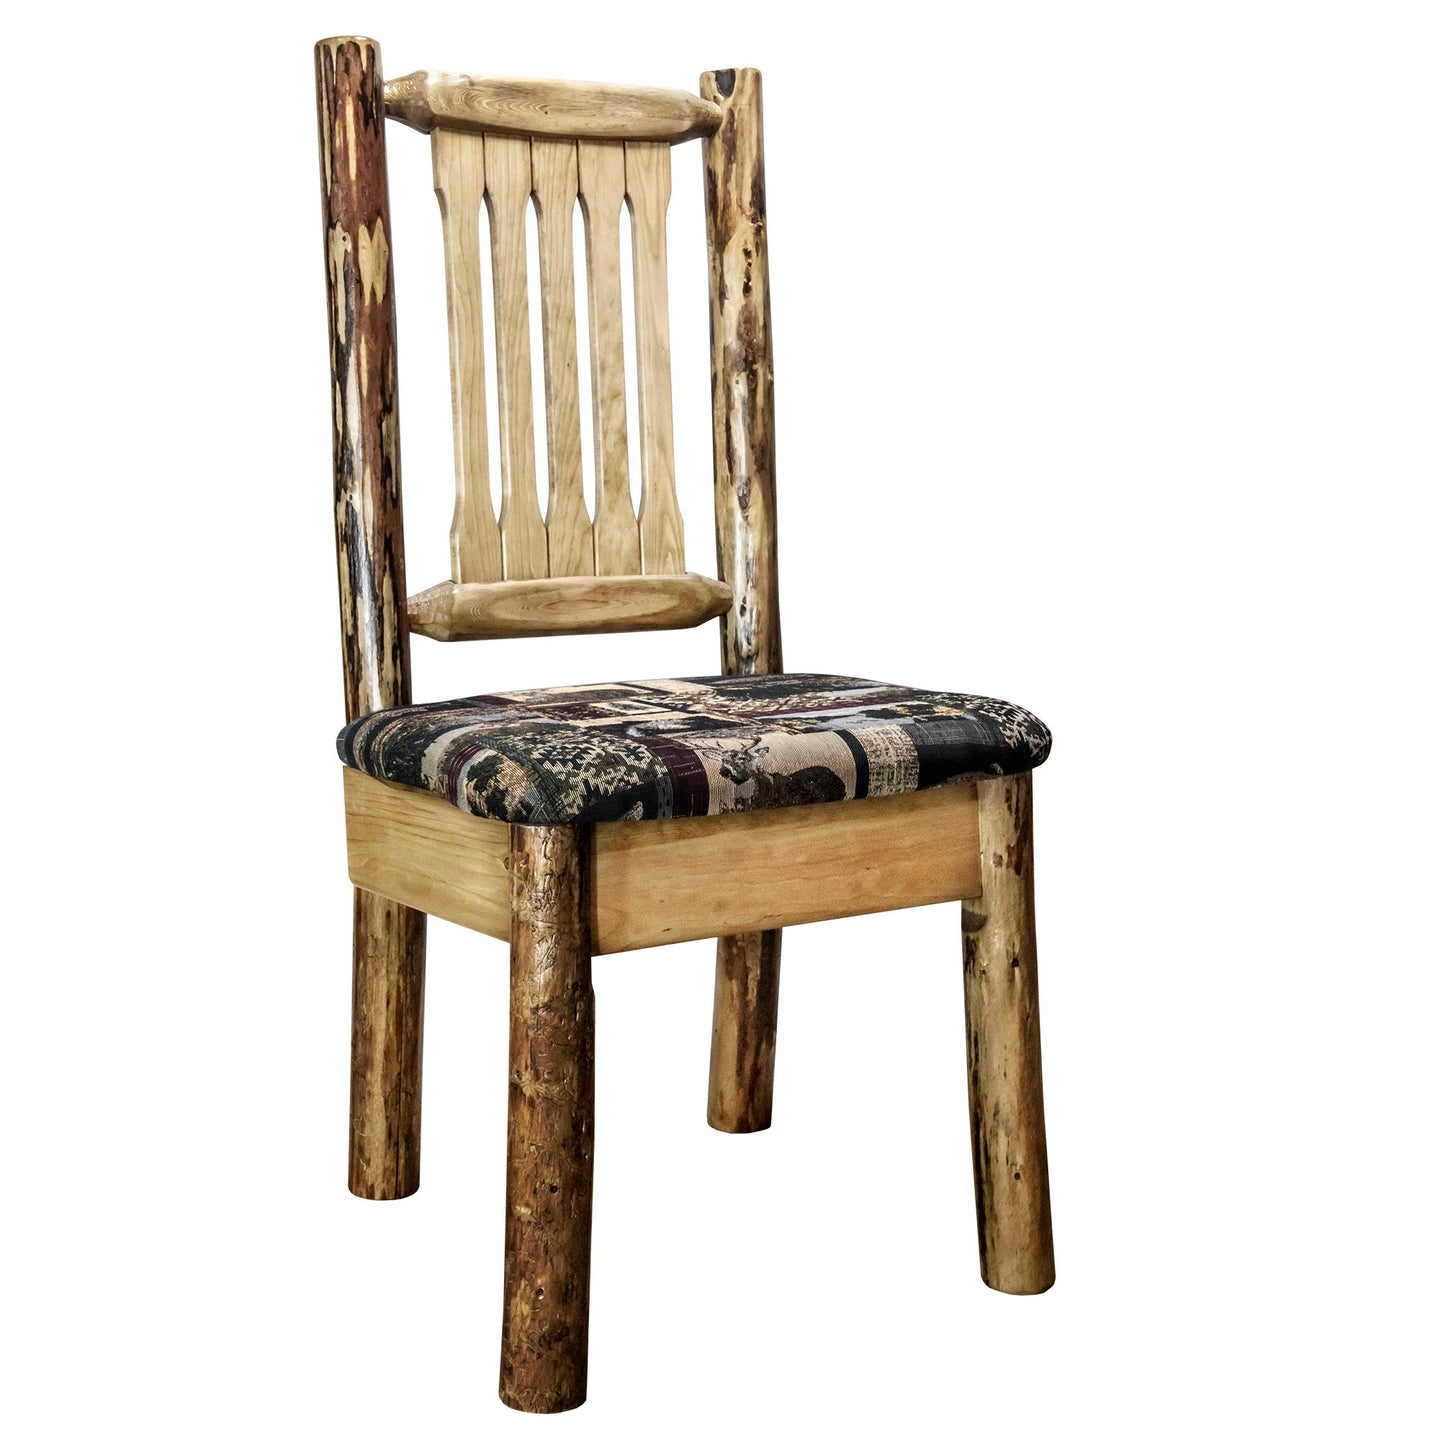 Glacier Country Rustic Dining Chair with Upholstered Seat, Woodland Pattern